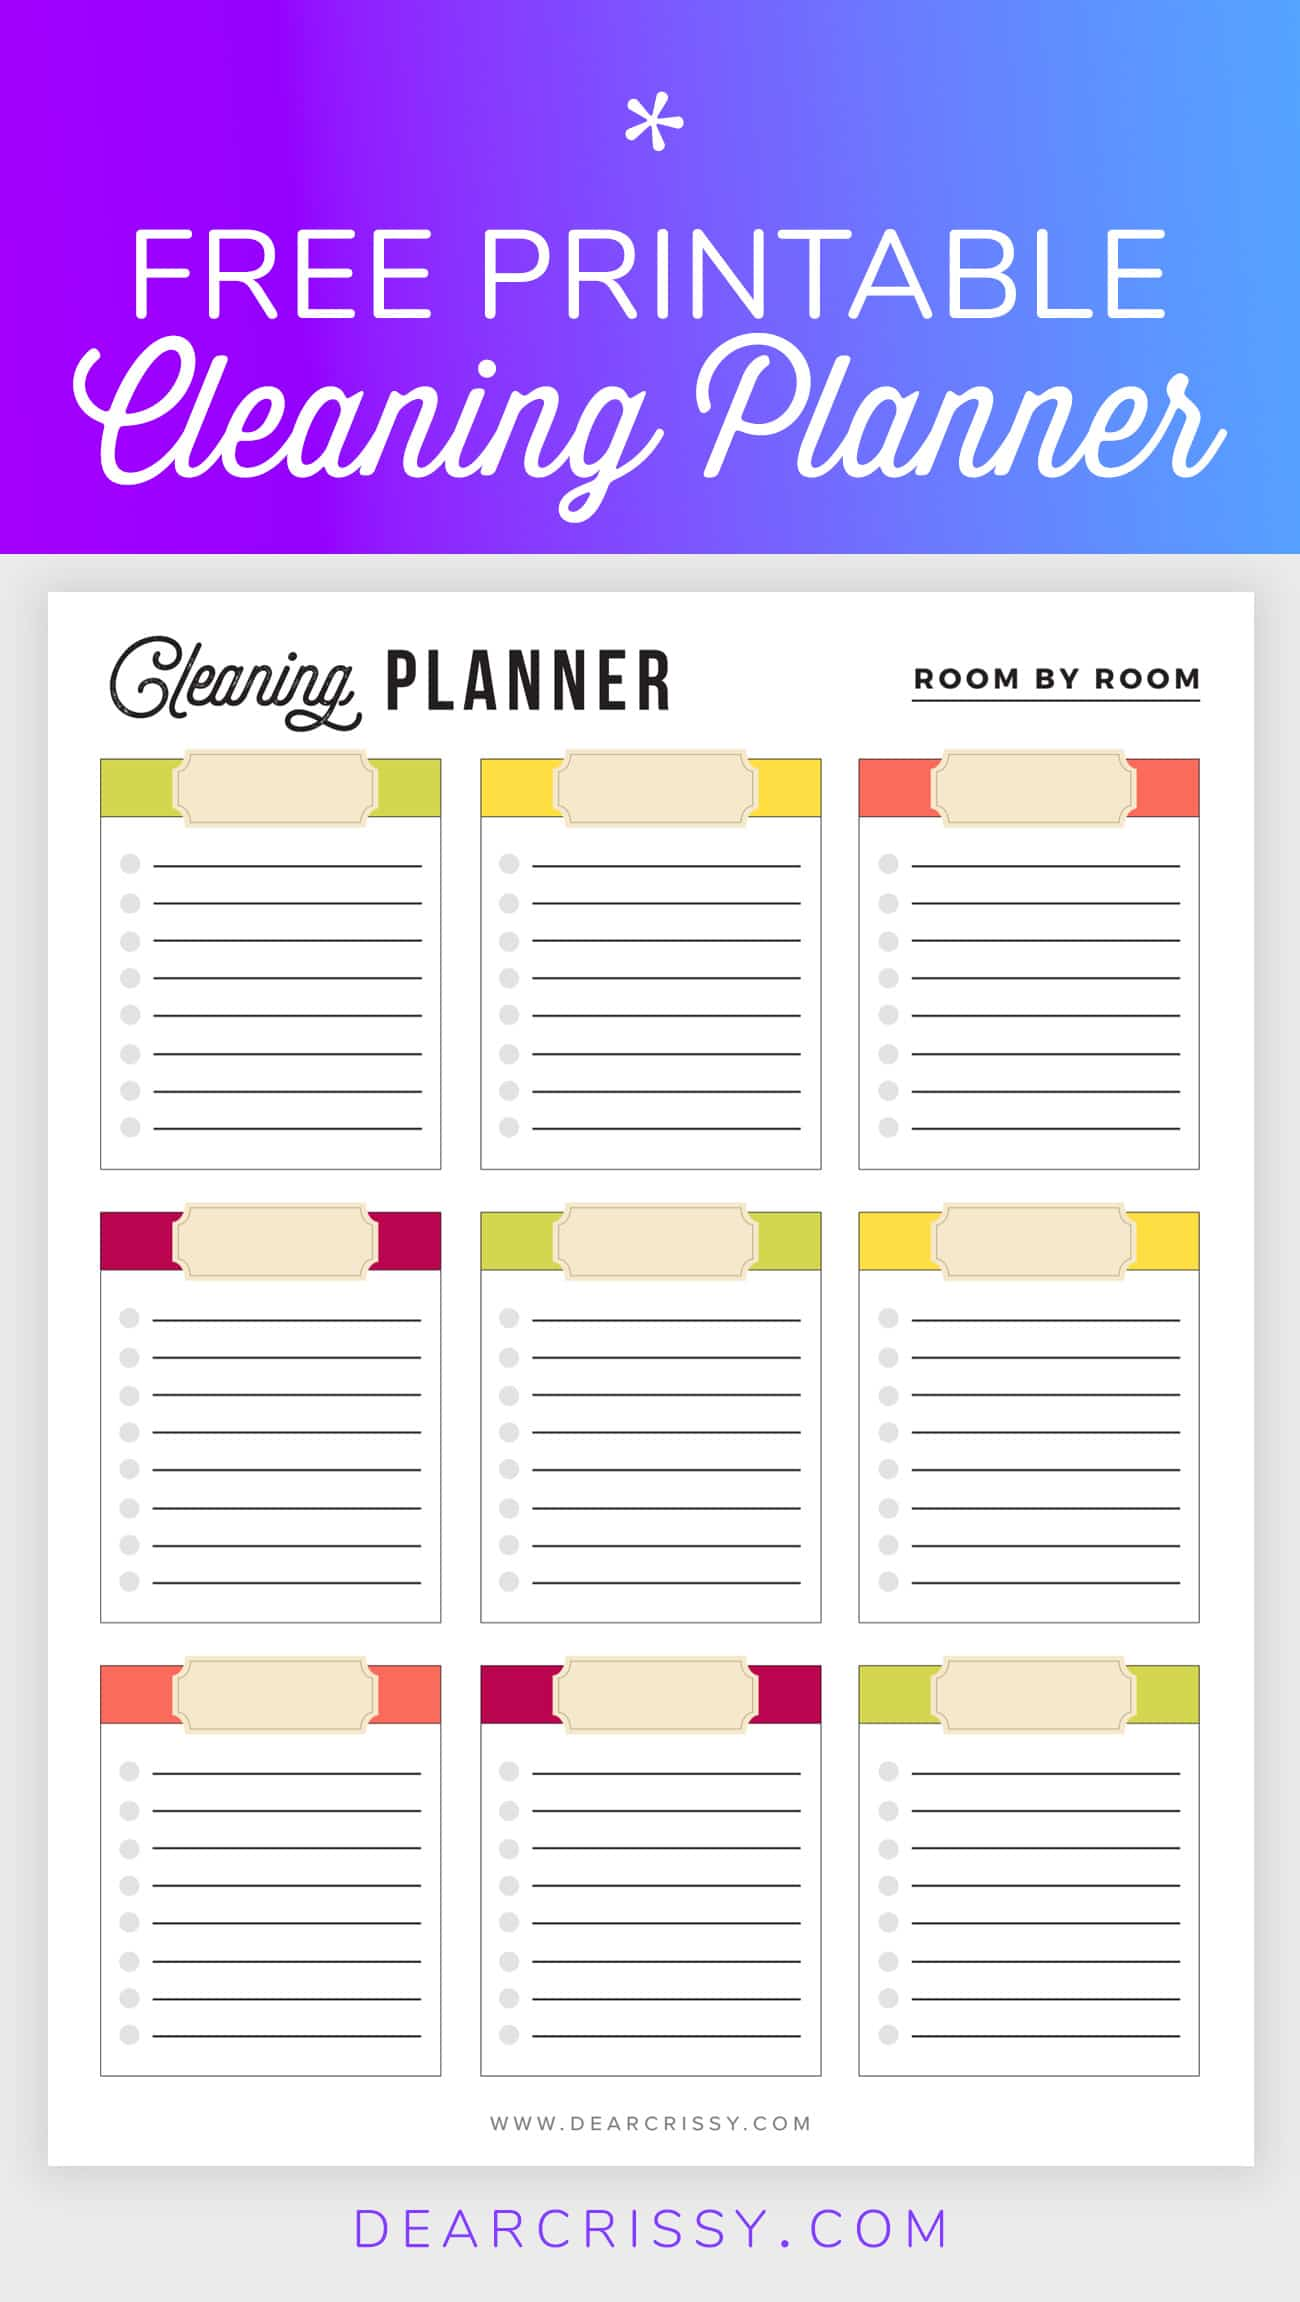 picture about Free Printable Cleaning Schedule referred to as Absolutely free Printable Cleansing Planner - Effortless Cleansing Listing